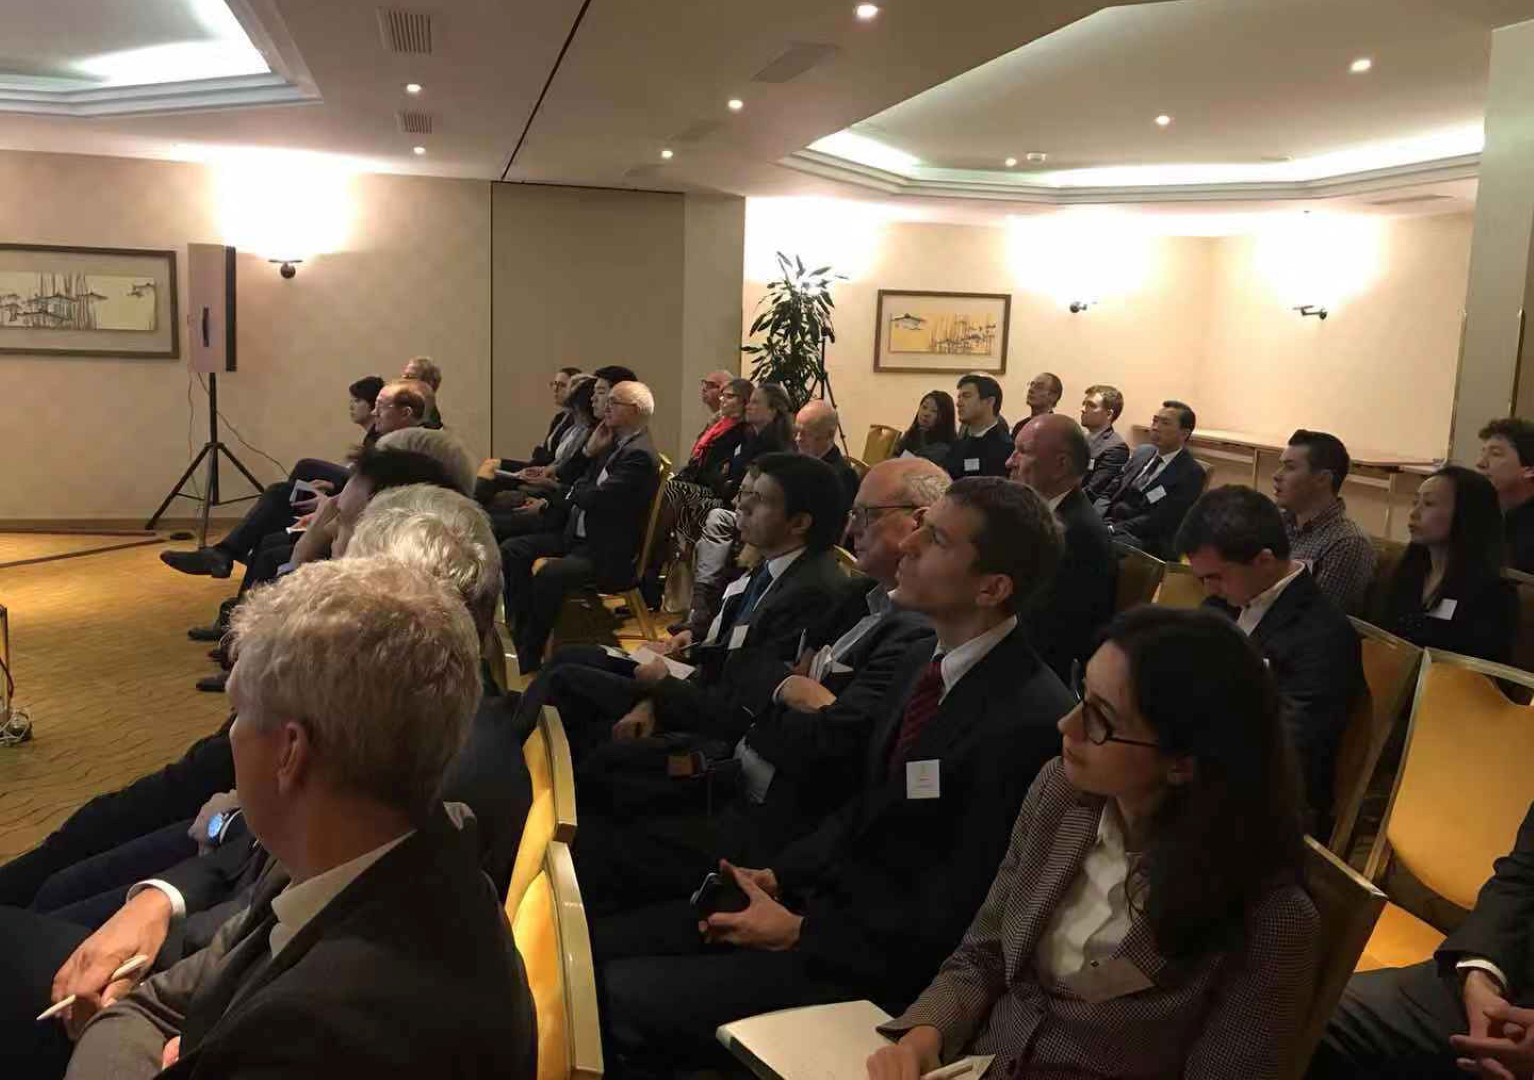 An audience of 50 registered guests attended the talk